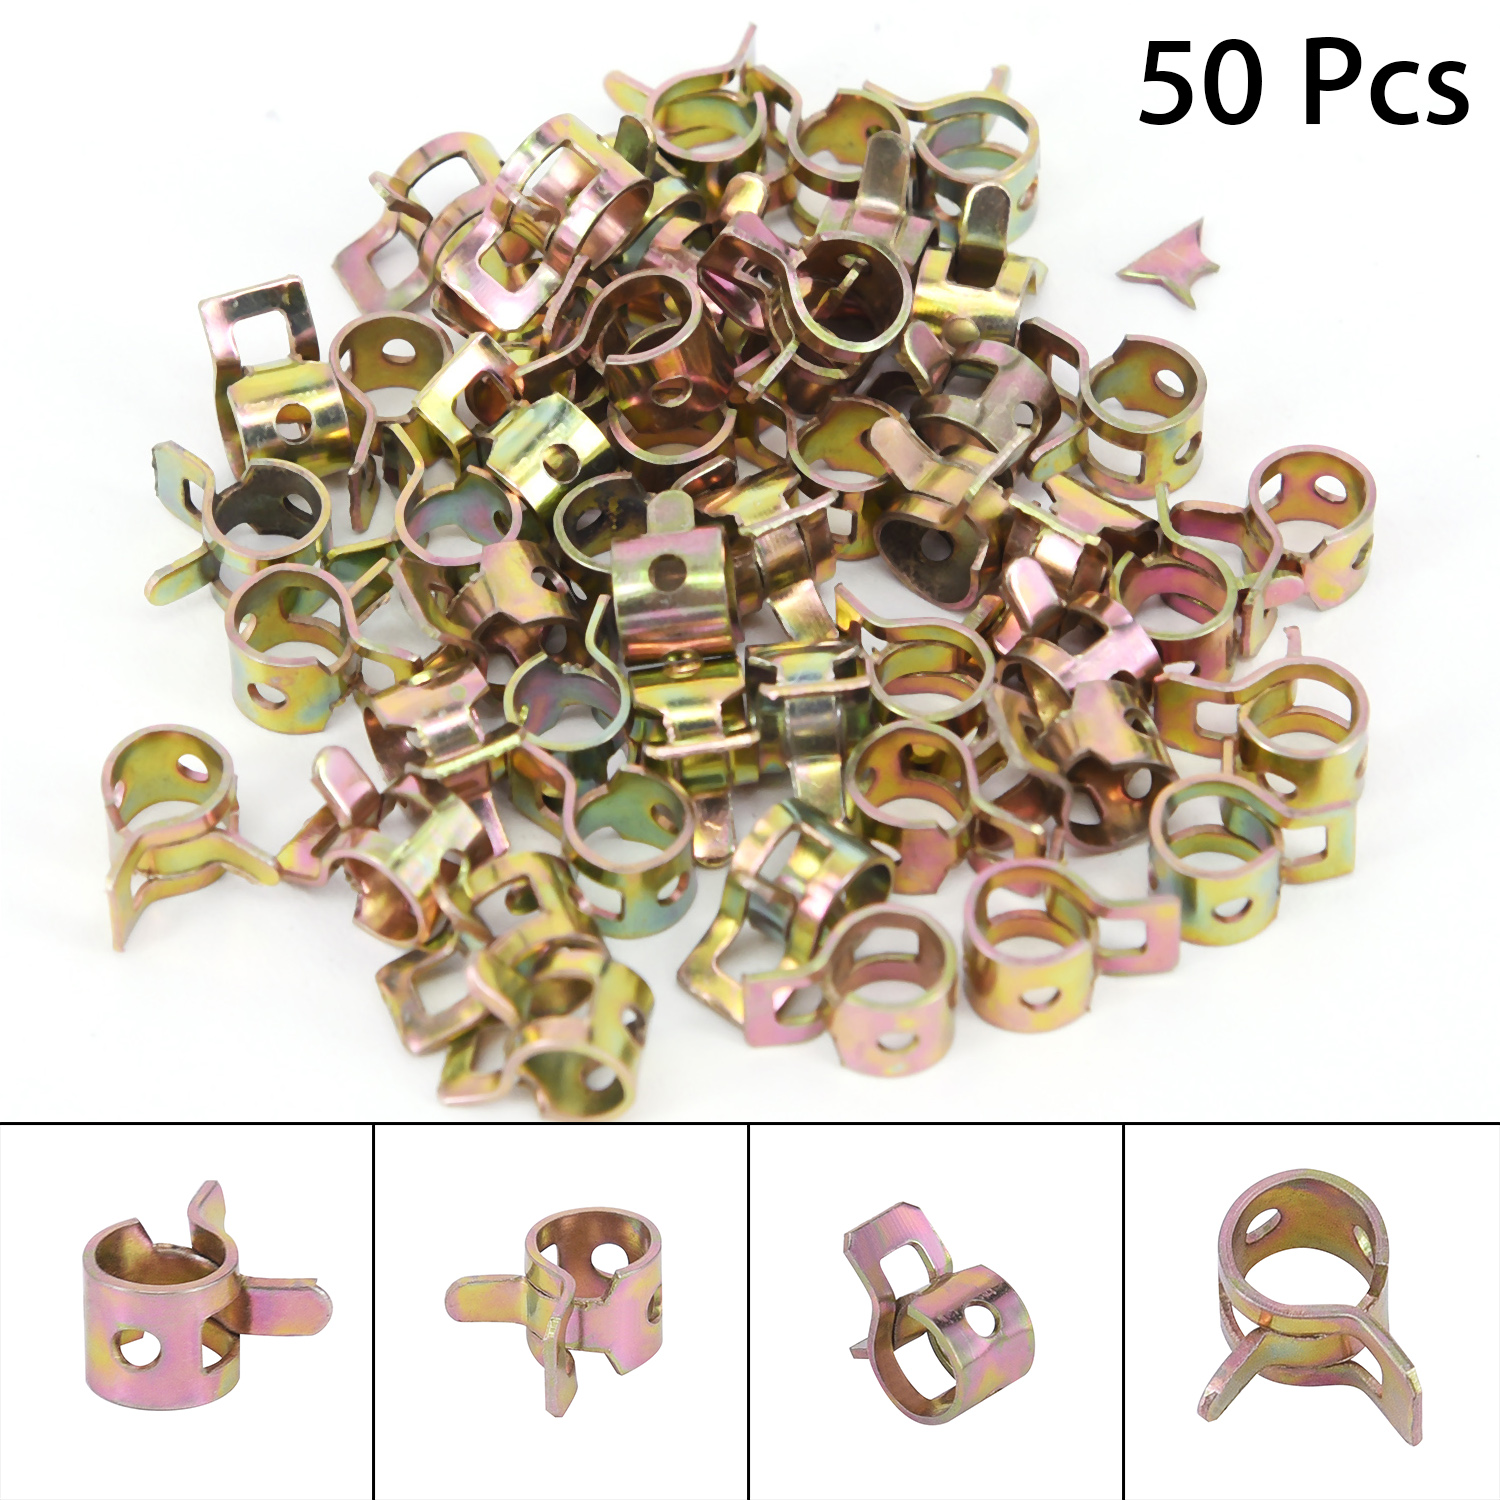 50x 1 4 6mm Spring Steel clip Fuel Oil Line Rubber Vacuum Hose Clamp Lot Parts in Auto Fastener Clip from Automobiles Motorcycles